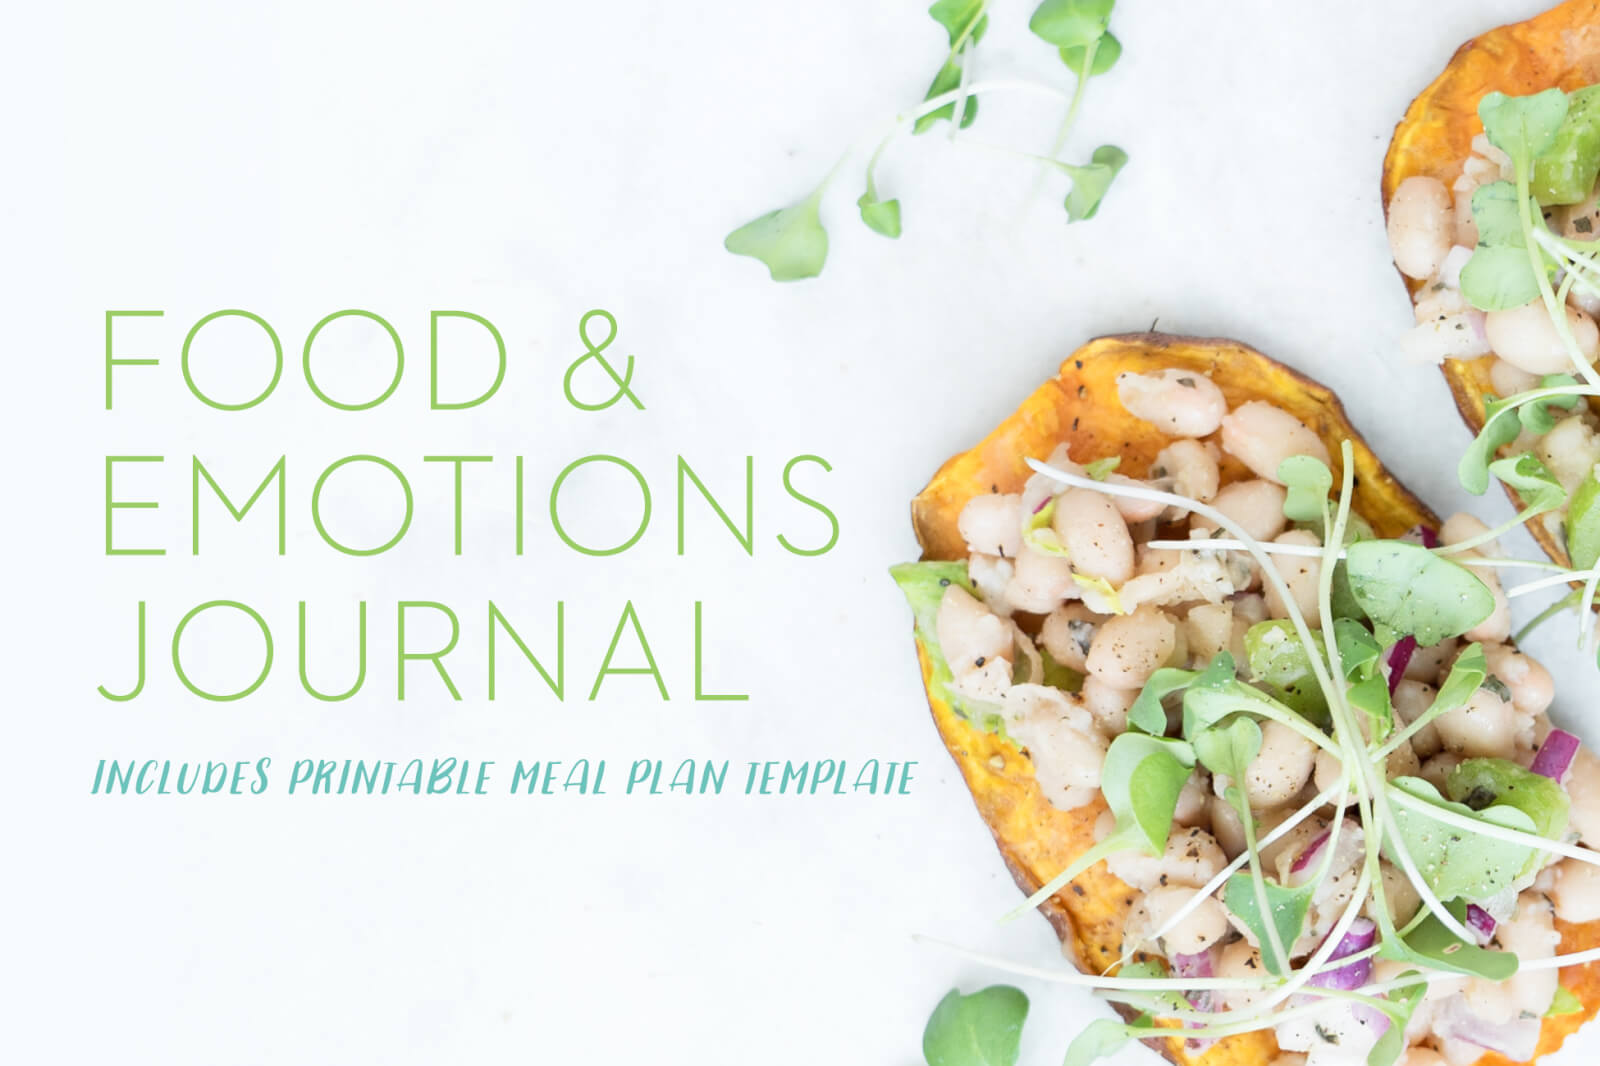 Food & Emotions Journal thumbnail